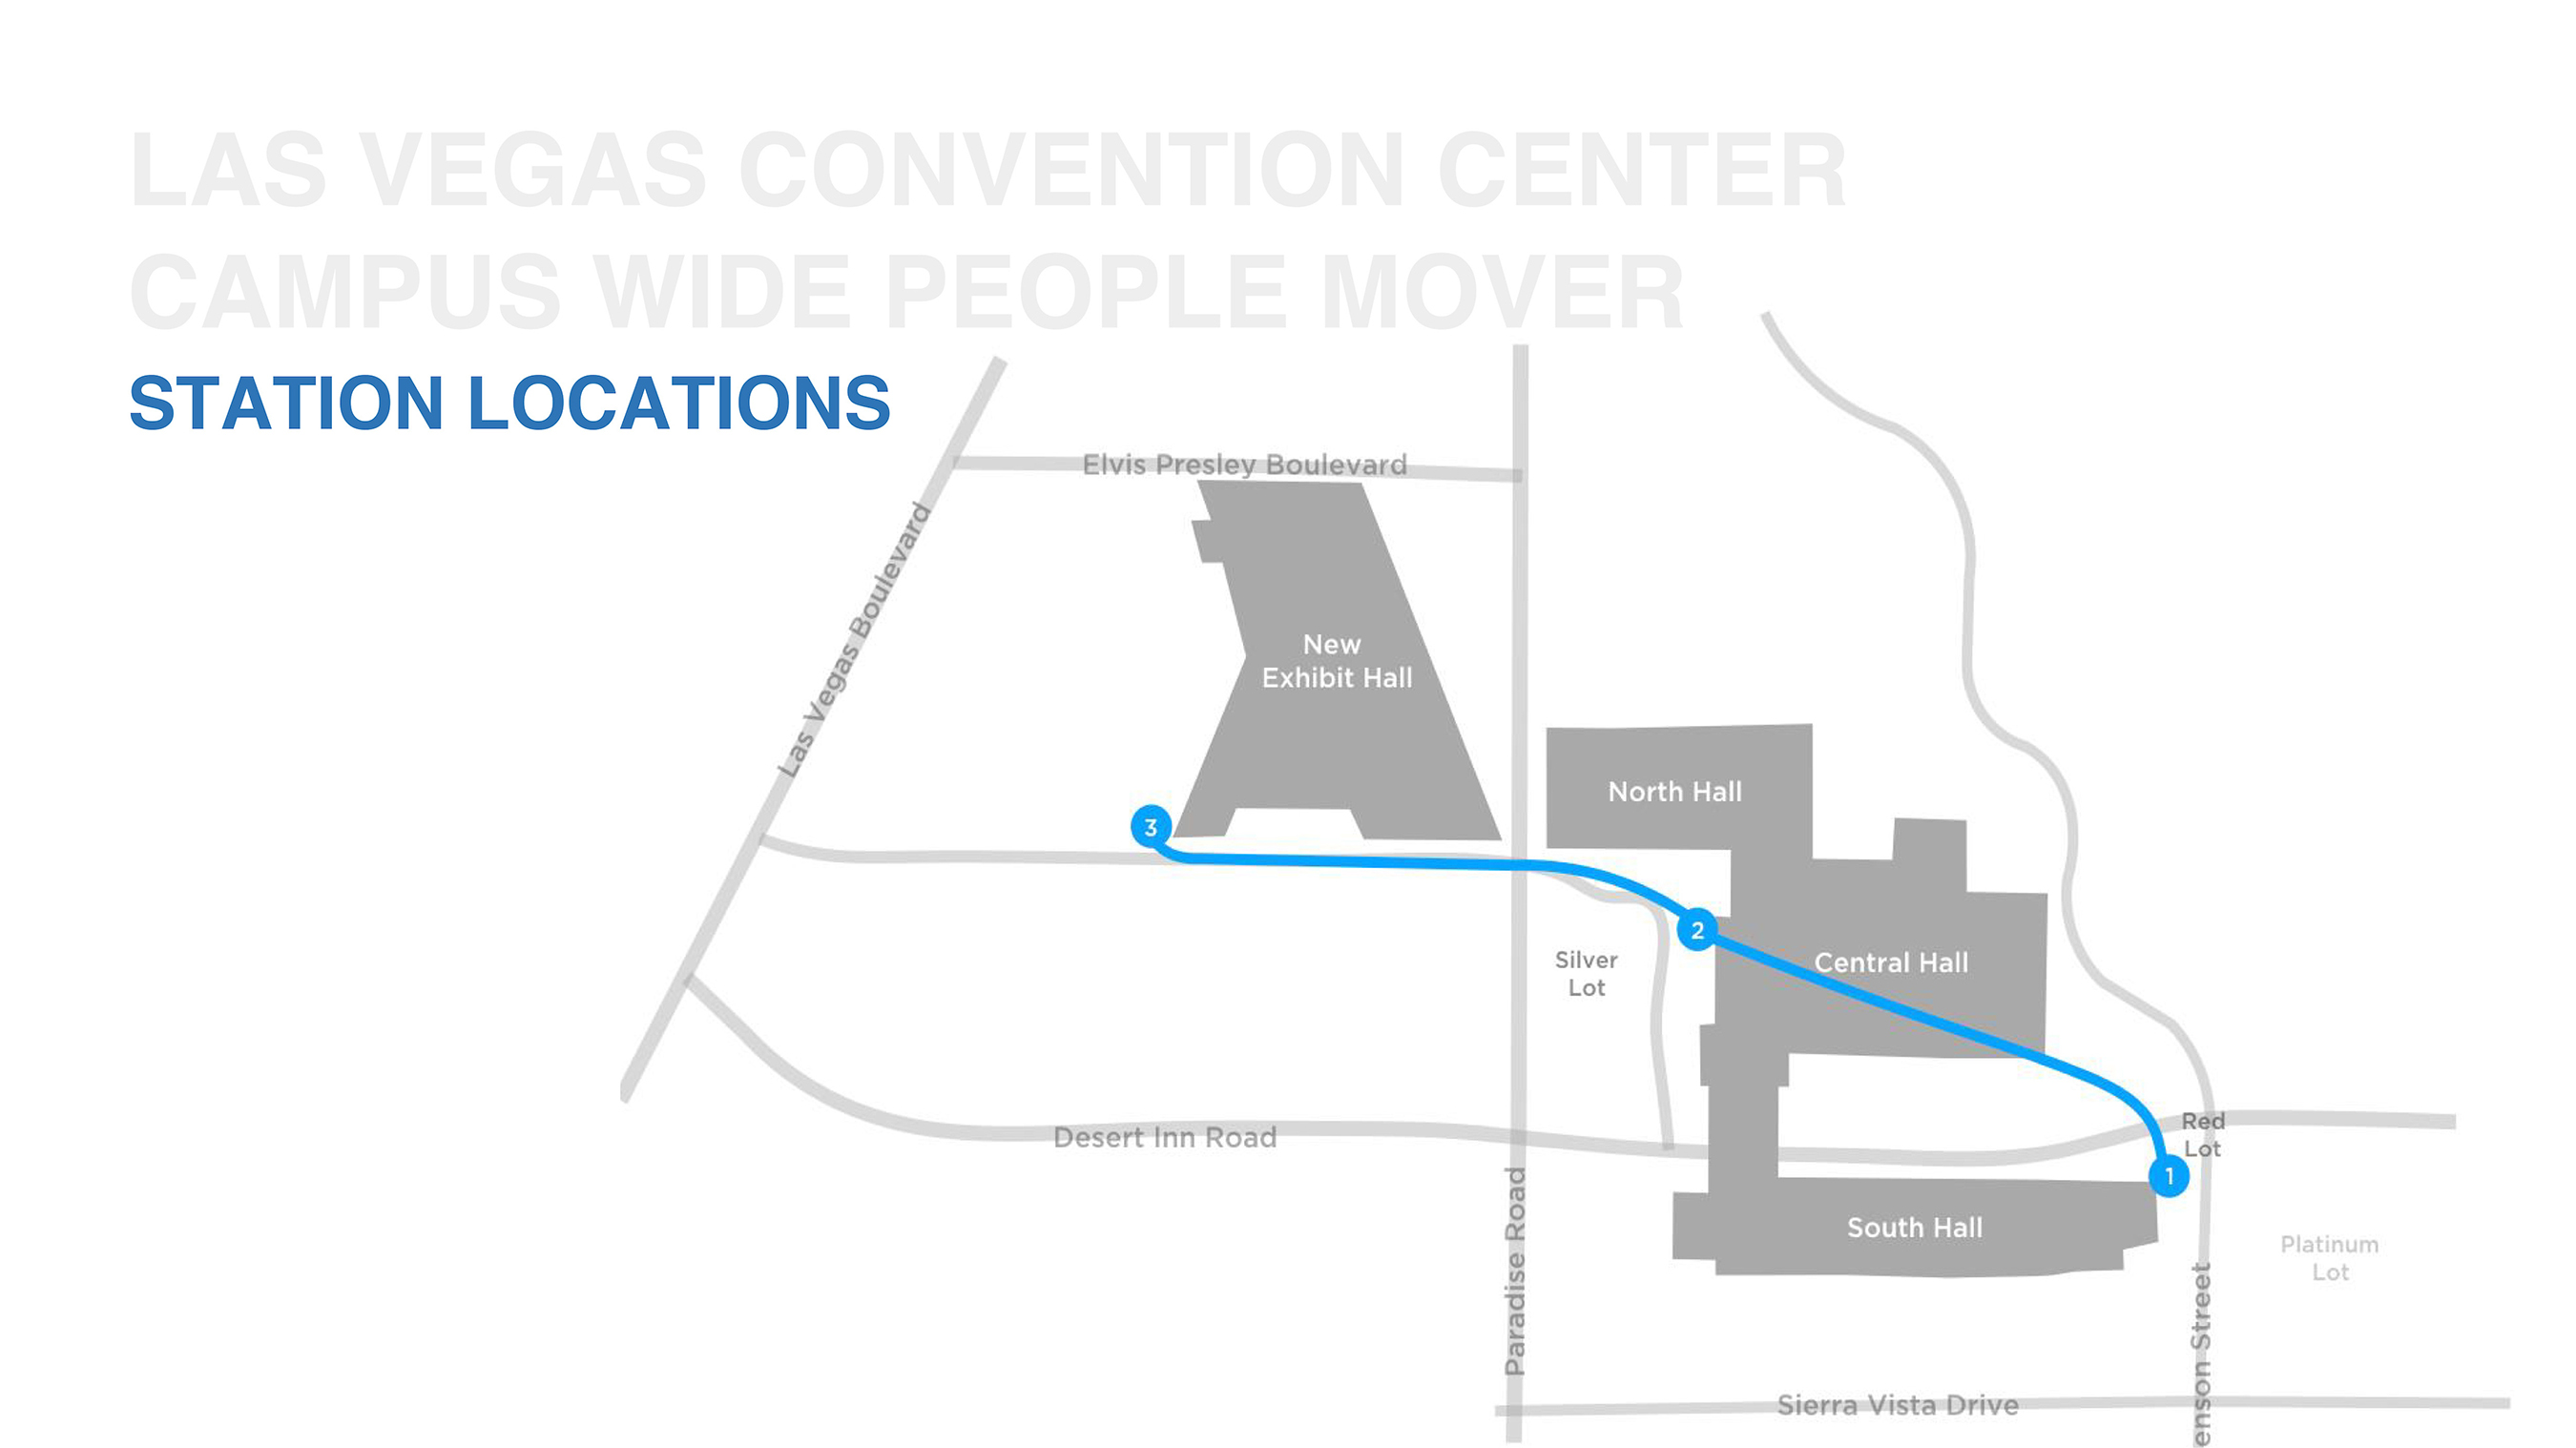 Las Vegas Convention Center Makes History as Elon Musk's The Boring Company Begins Tunneling the Destination's First Underground People Mover